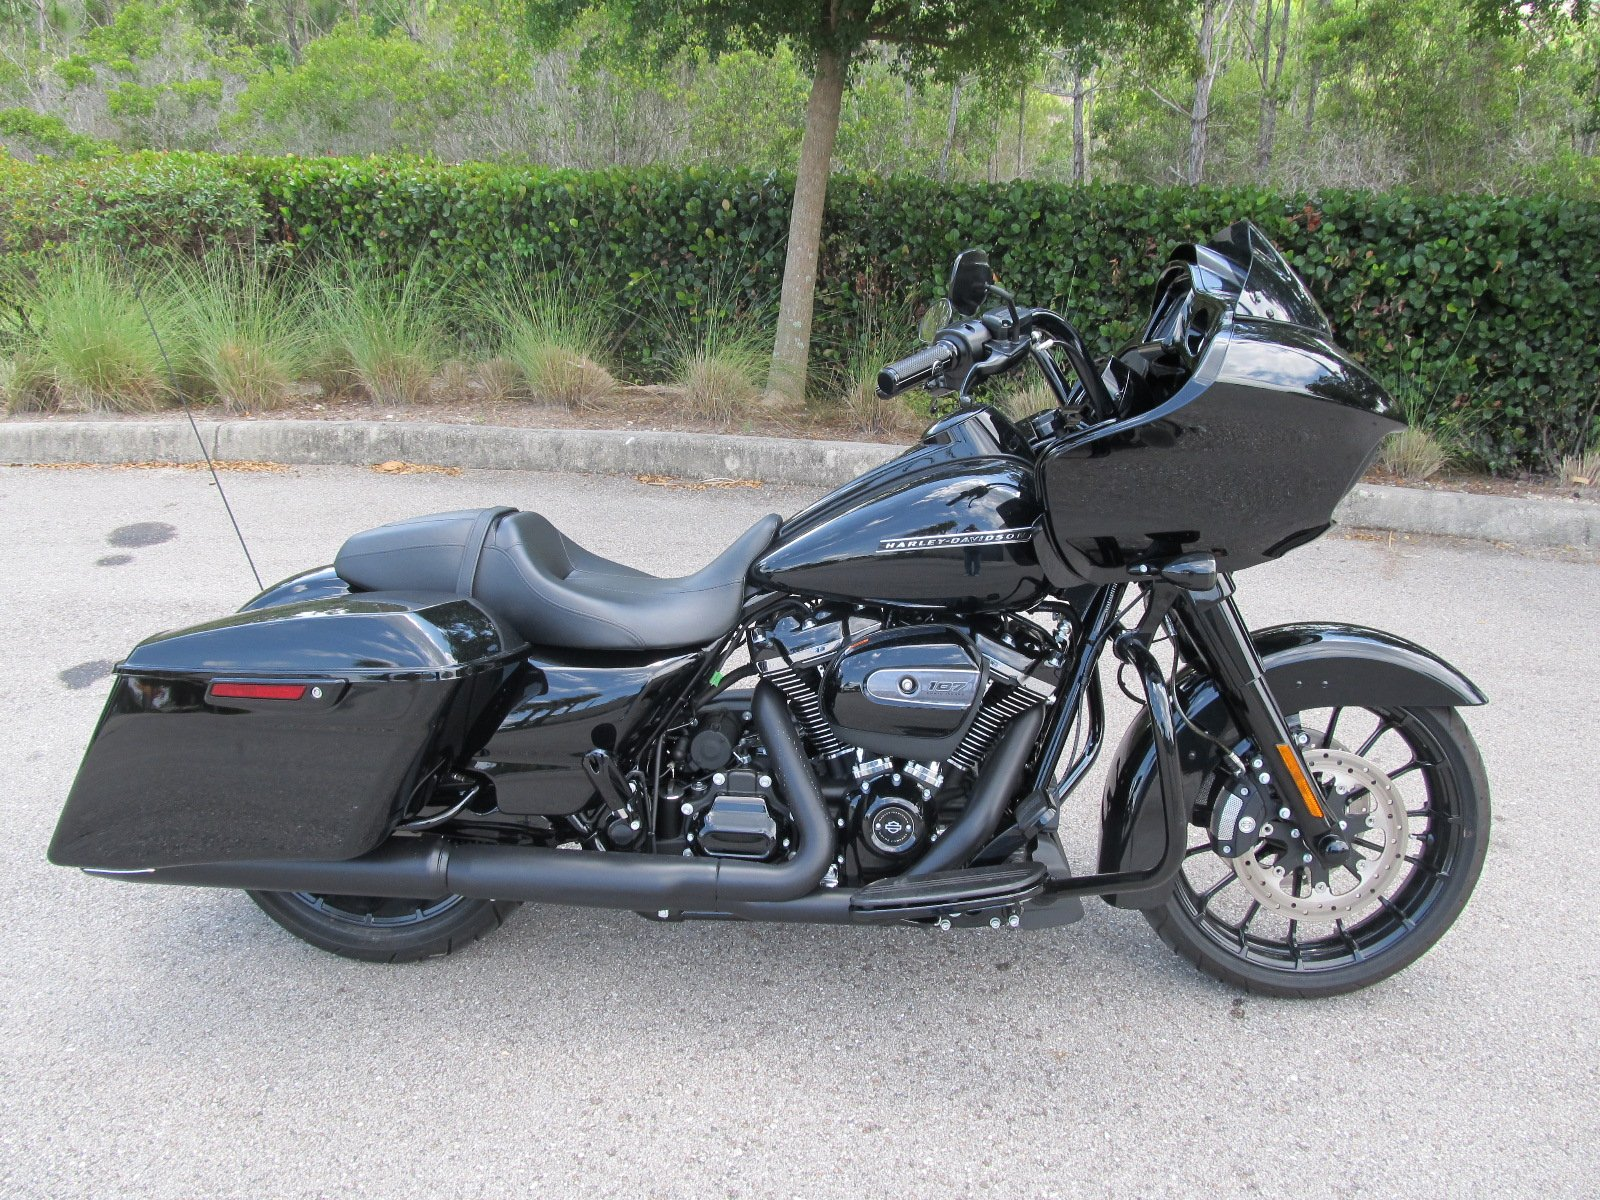 Pre-Owned 2018 Harley-Davidson Road Glide Special FLTRXS